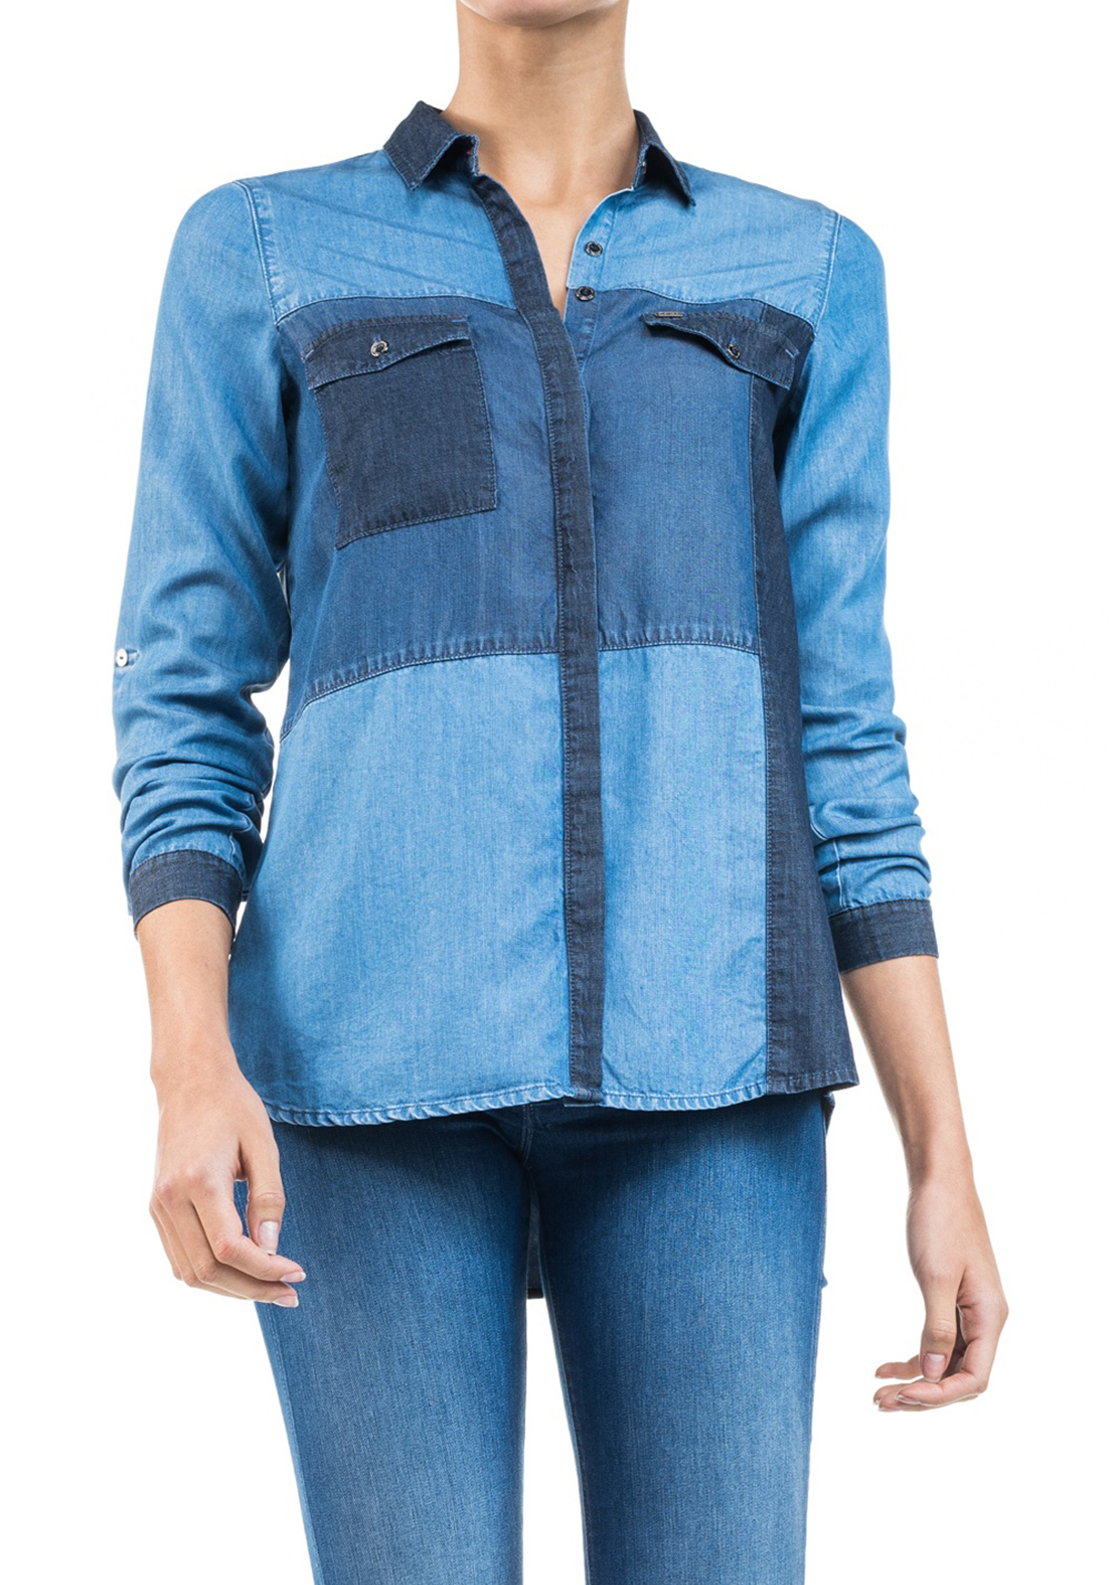 Salsa Contrast Denim Shirt, Blue